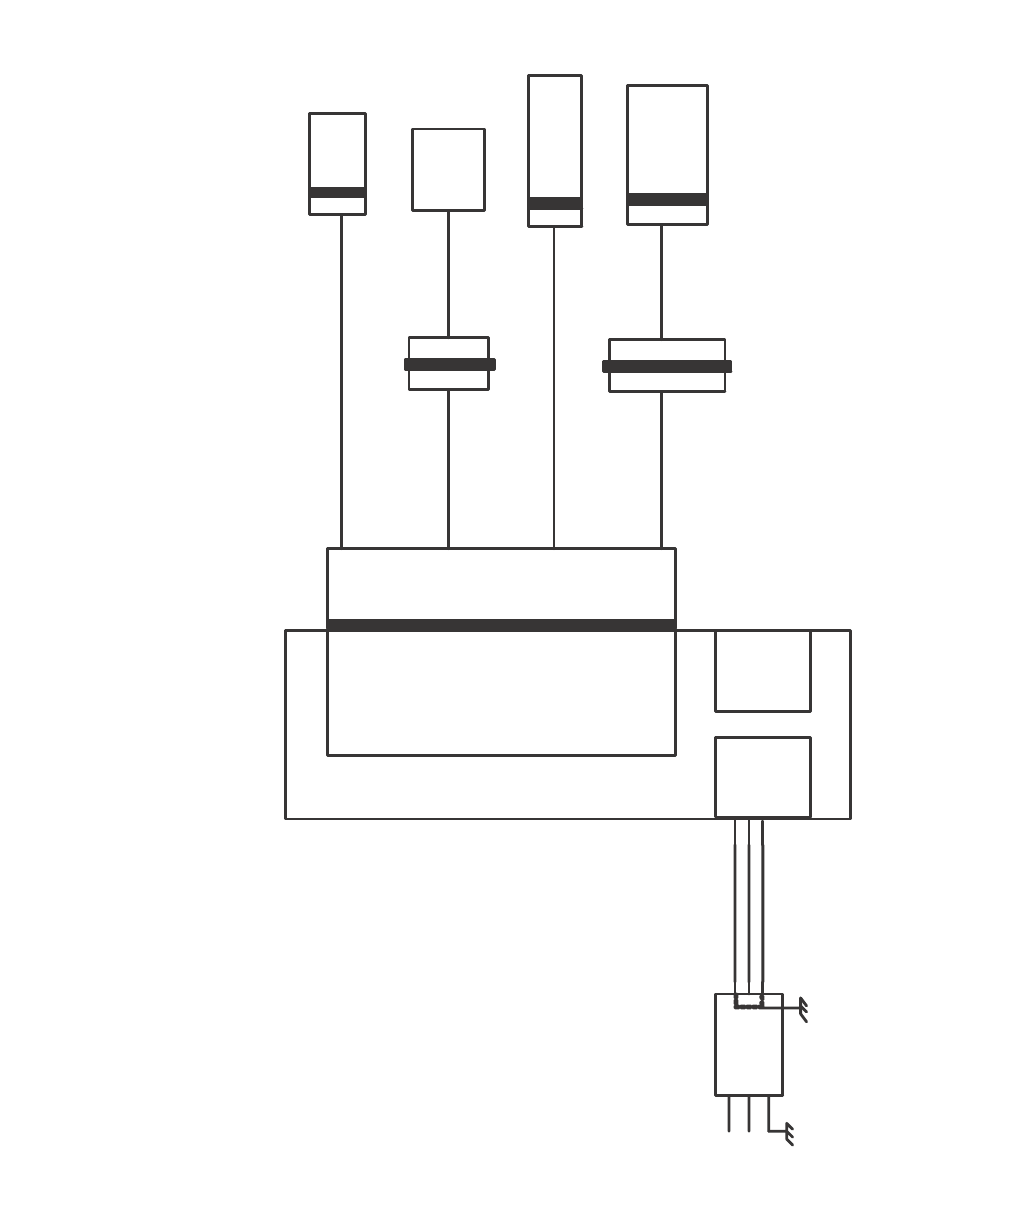 Graco 313526j Supply Systems Users Manual Operation English Move Checkmate Diagram Printable Wiring Schematic Harness